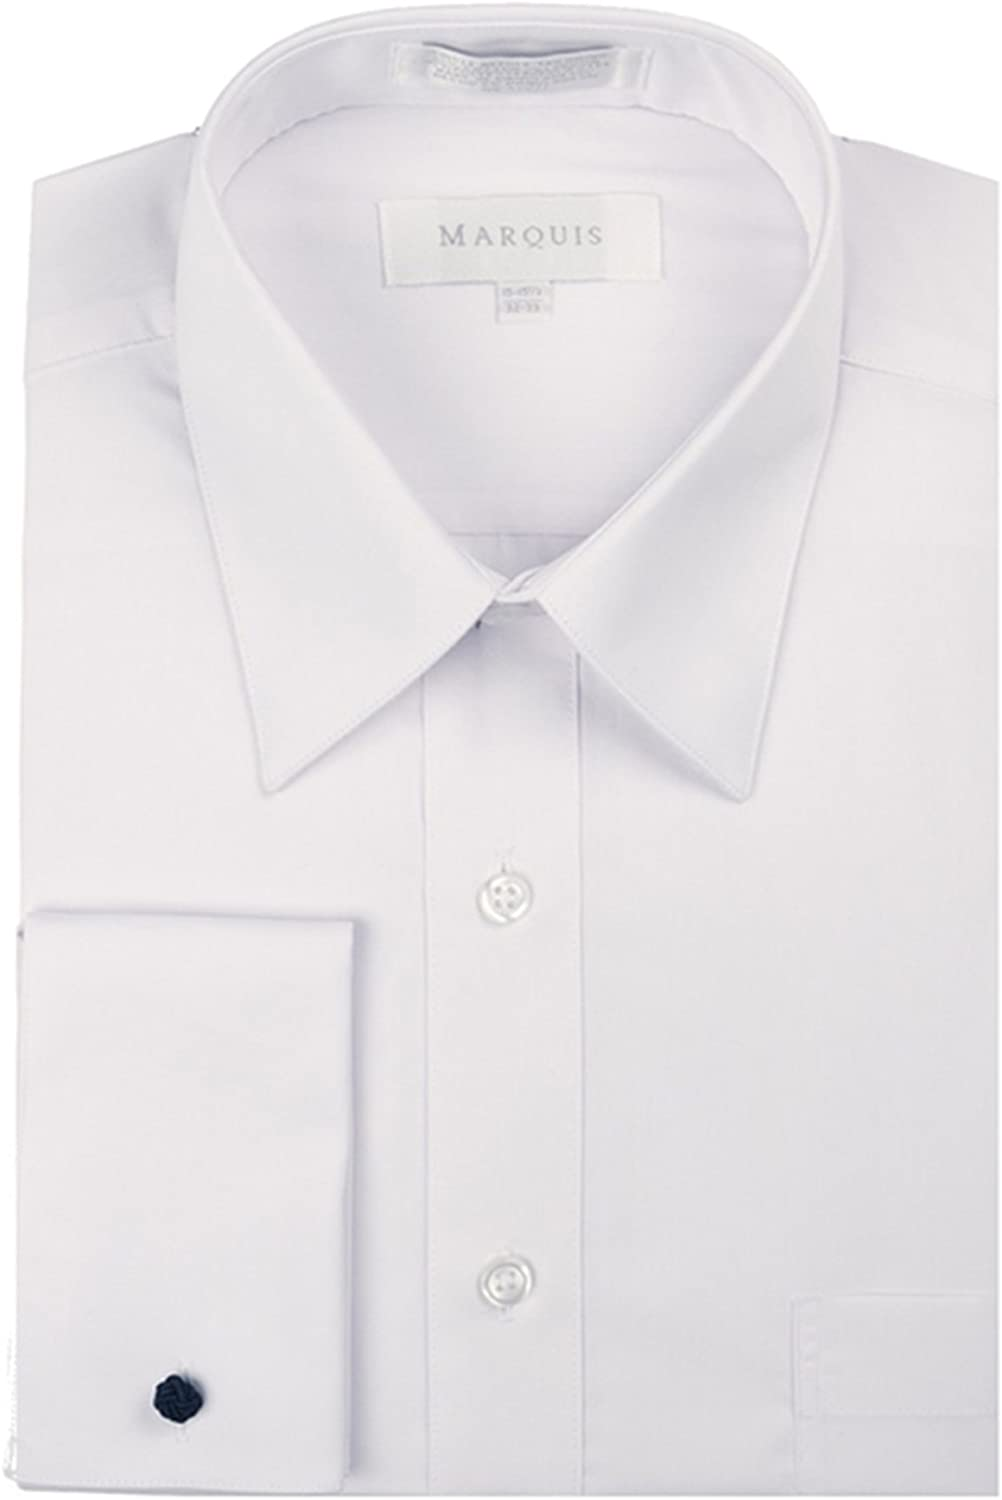 Marquis Men's Slim Fit French Cuff Dress Shirt - Cufflinks Included